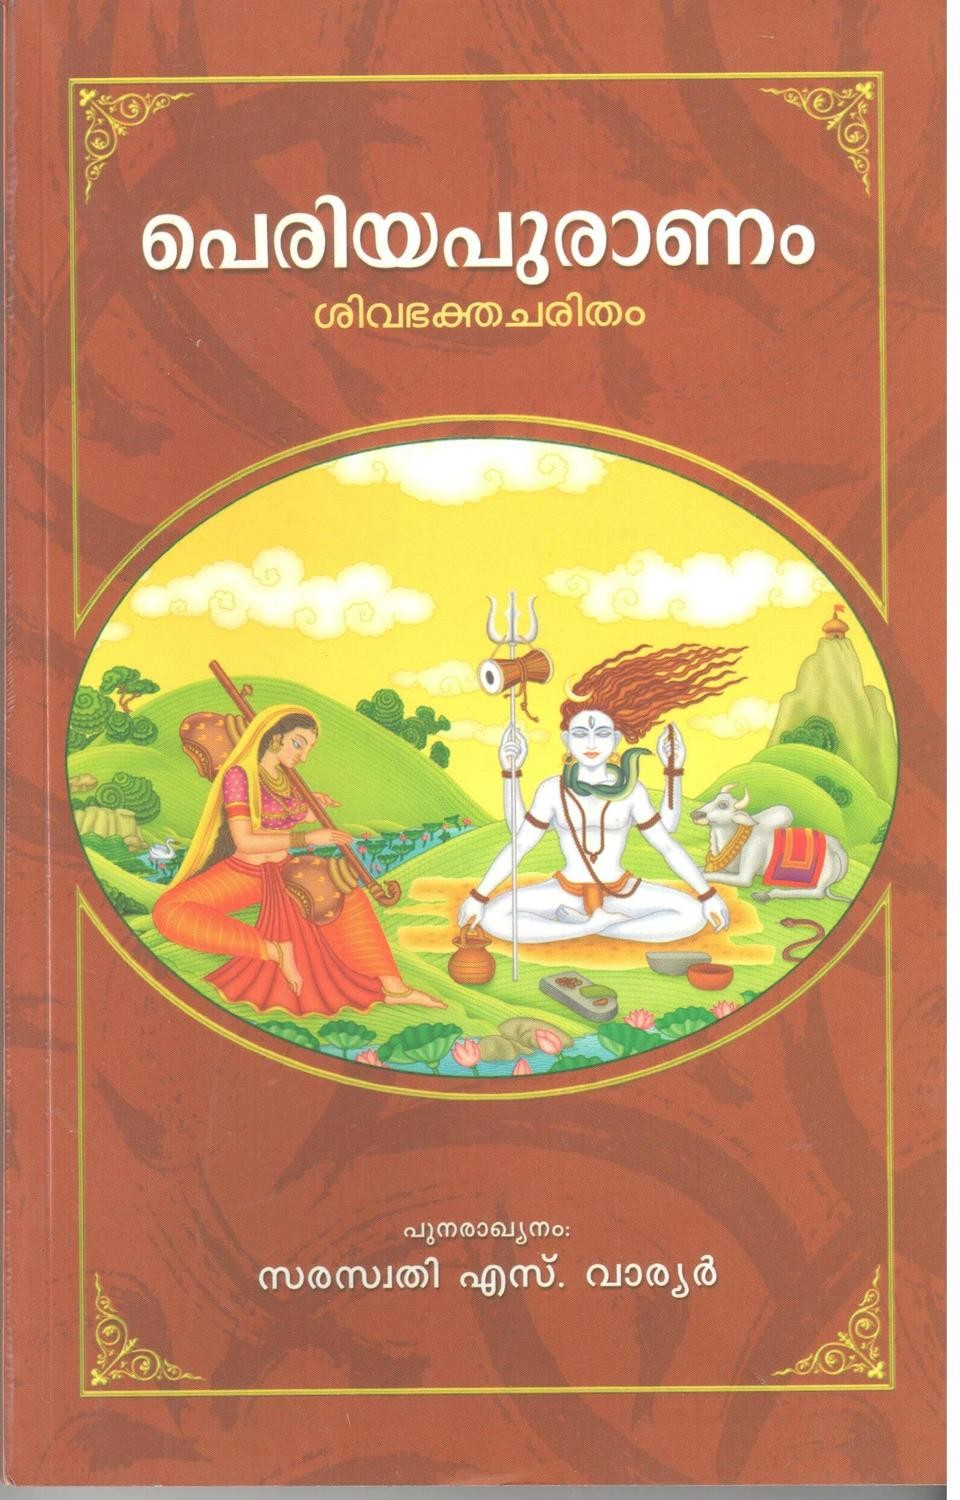 പെരിയപുരാണം | Periyapuranam by Saraswathi S. Warrior